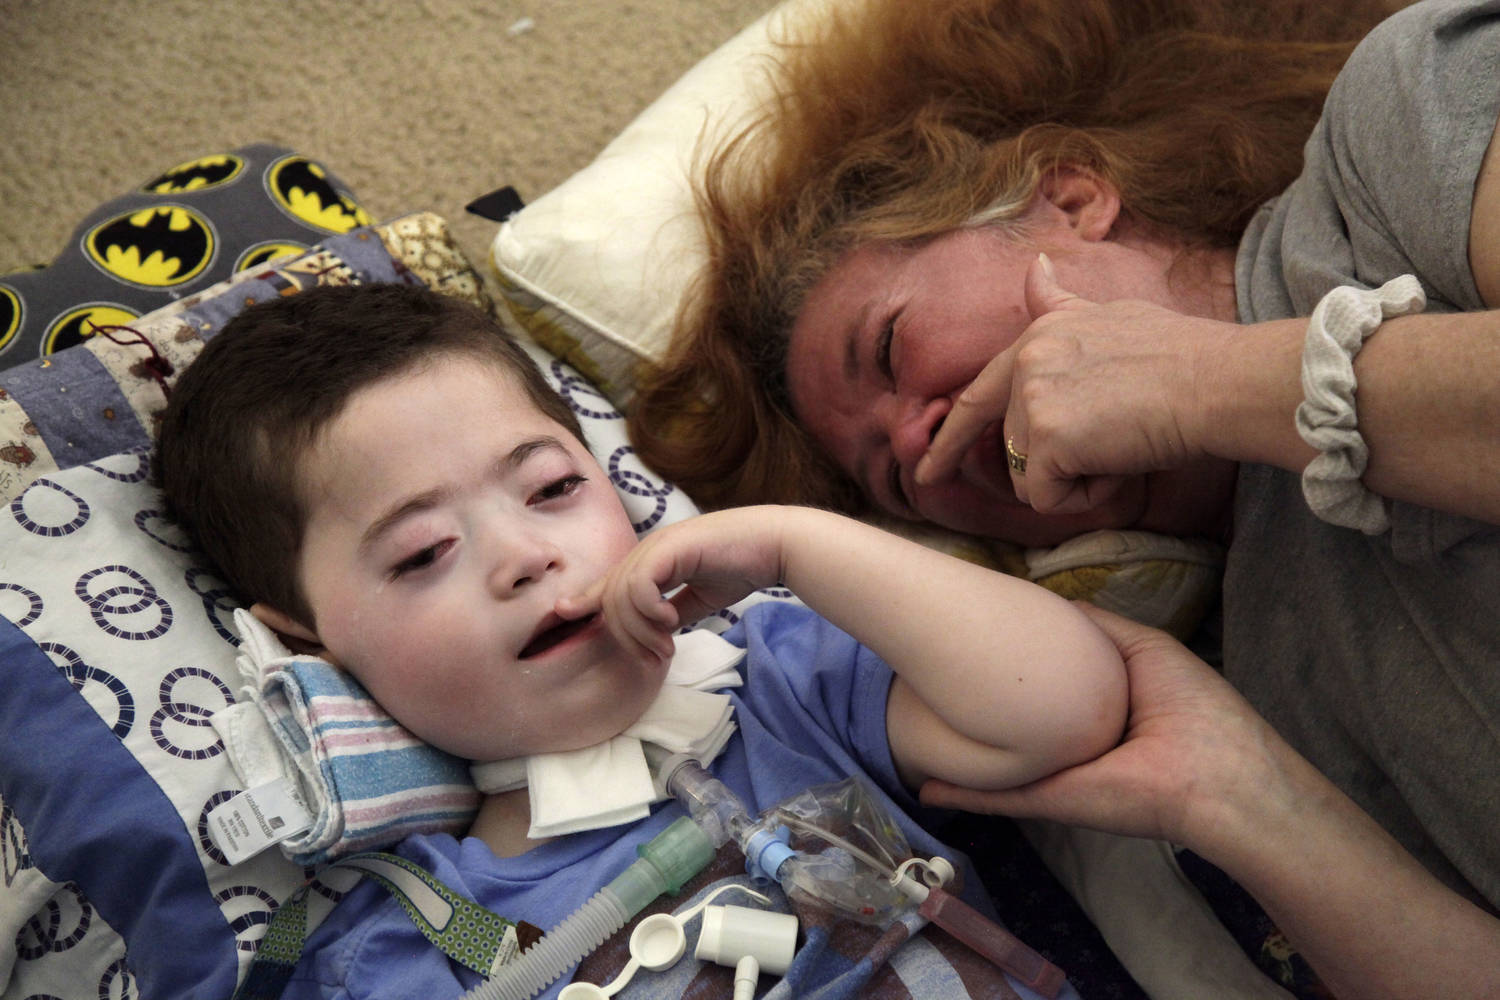 A woman showing her emotion lies on the floor next to the child, staring at him and holding his arm.